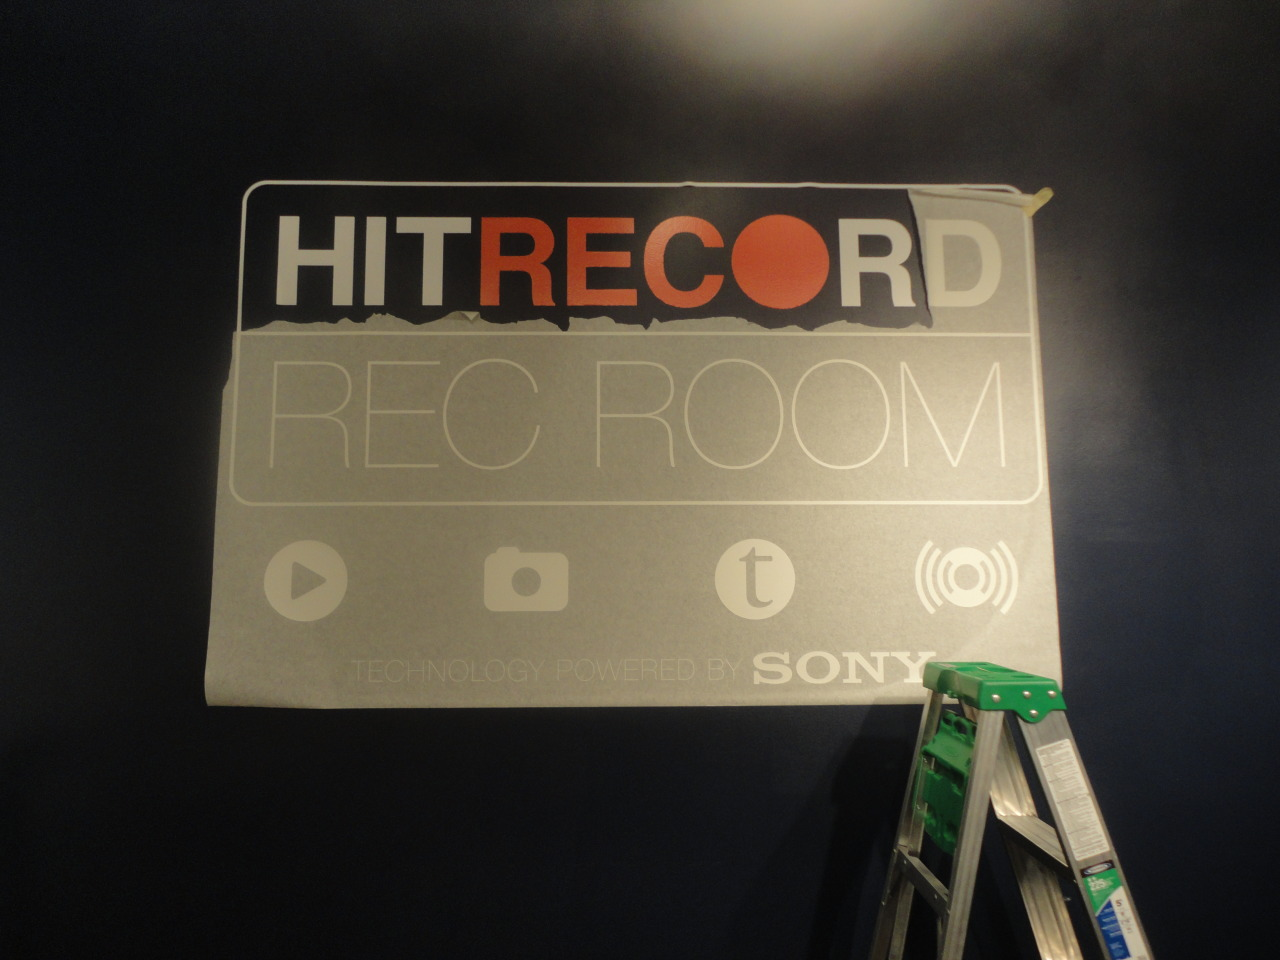 raineydaze:  hitrecord:  The REC Room at Sundance - a work in progress. :oD   The hitrecord REC room at the Sundance Film Festival opens in less than 2 minutes! I hope everyone at the festival has fun and stops by to hit RECord!